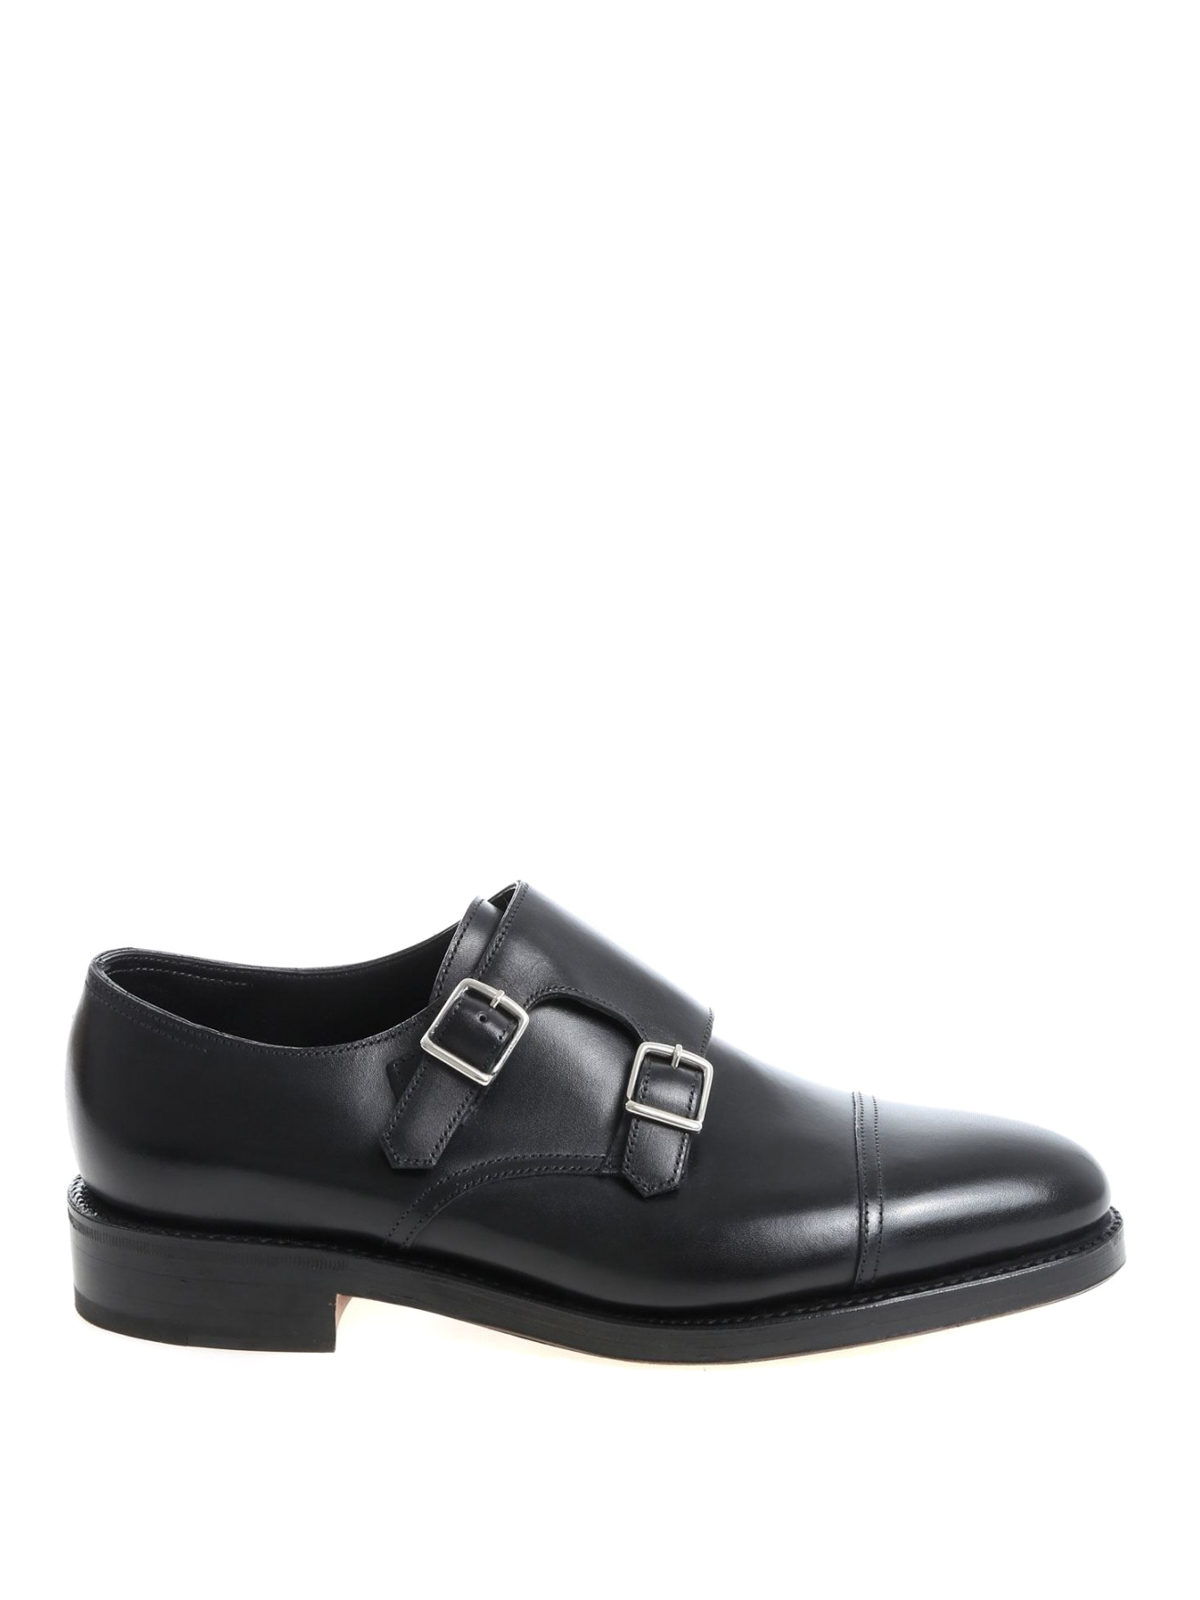 John Lobb WILLIAM CALF MONK STRAPS